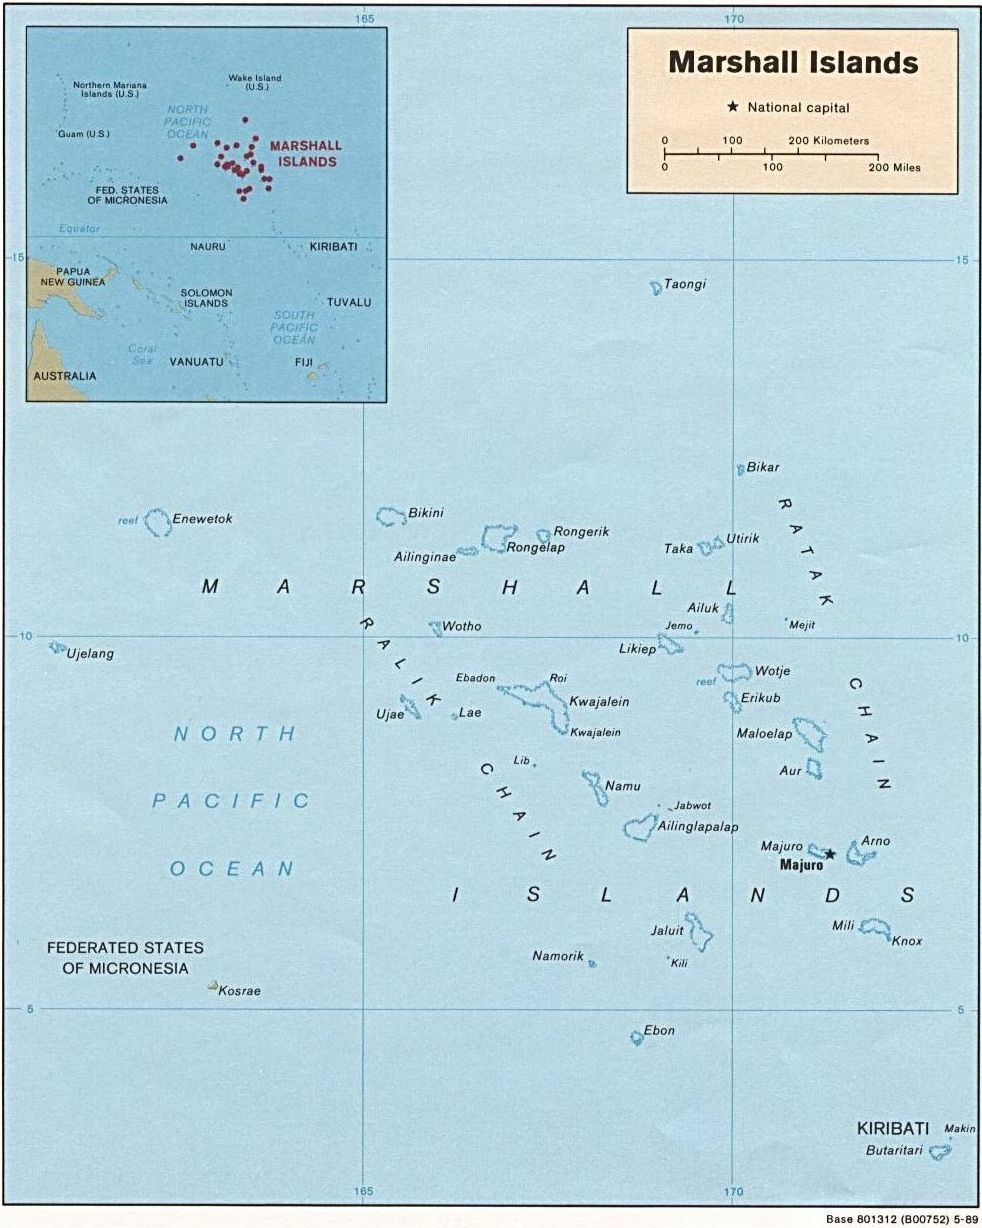 ChamorroBibleorg Map Of The Republic Of The Marshall Islands - Marshall islands map